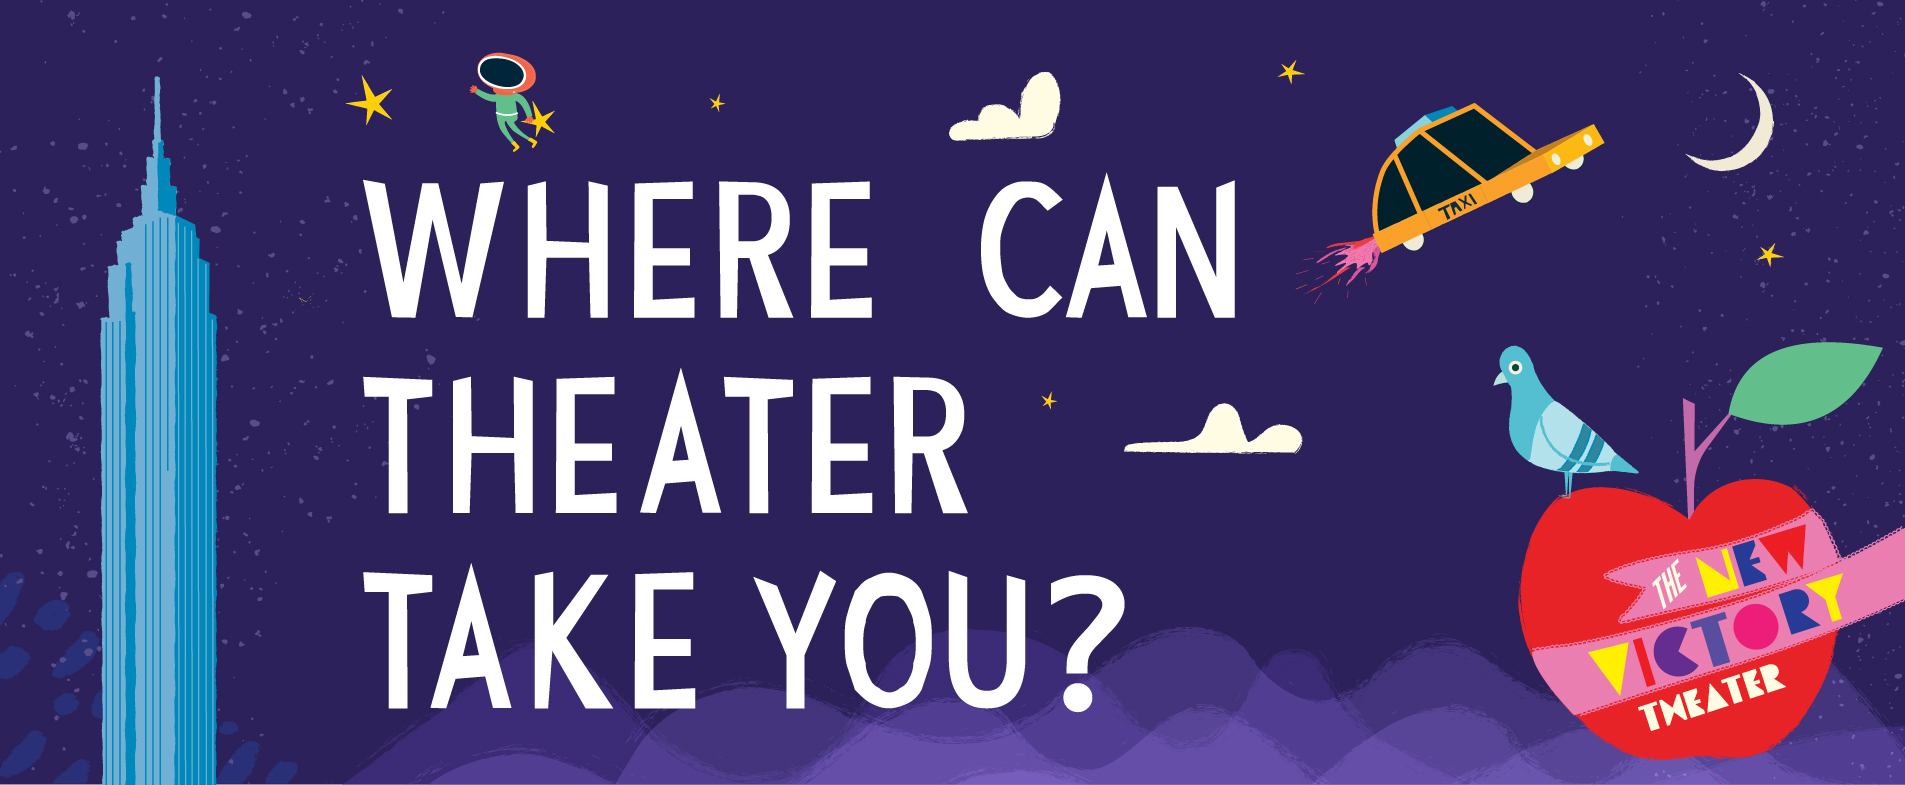 Where Can Theater Take You?